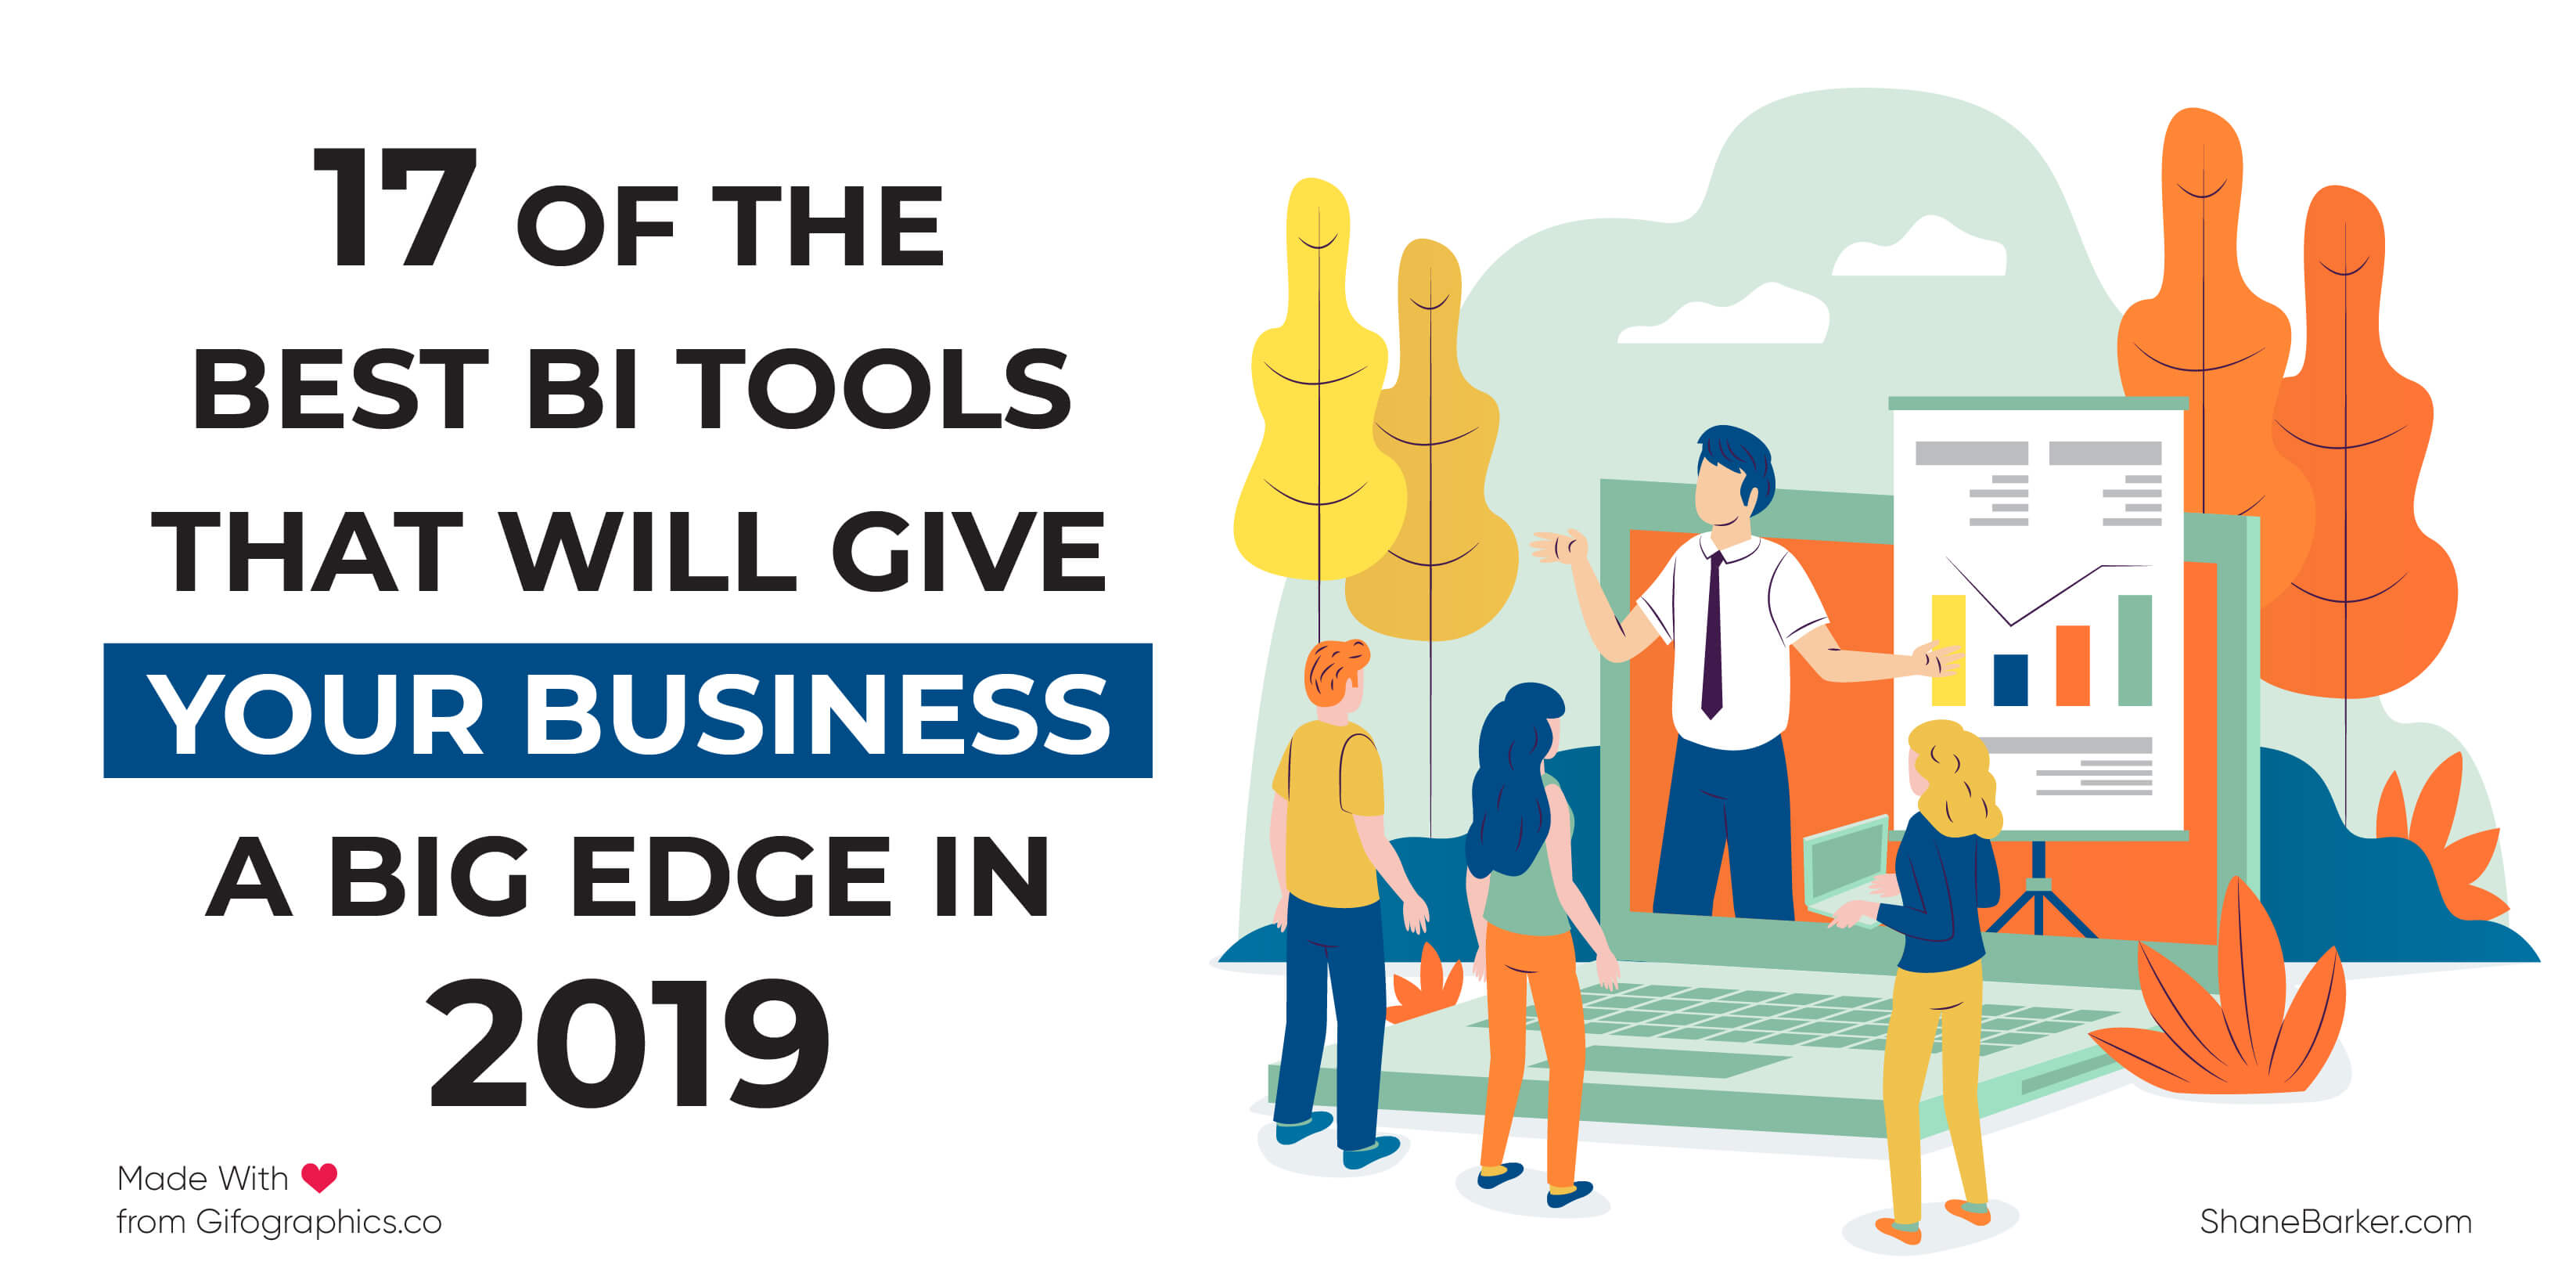 17 of the Best BI Tools That Will Give Your Business a Big Edge in 2019